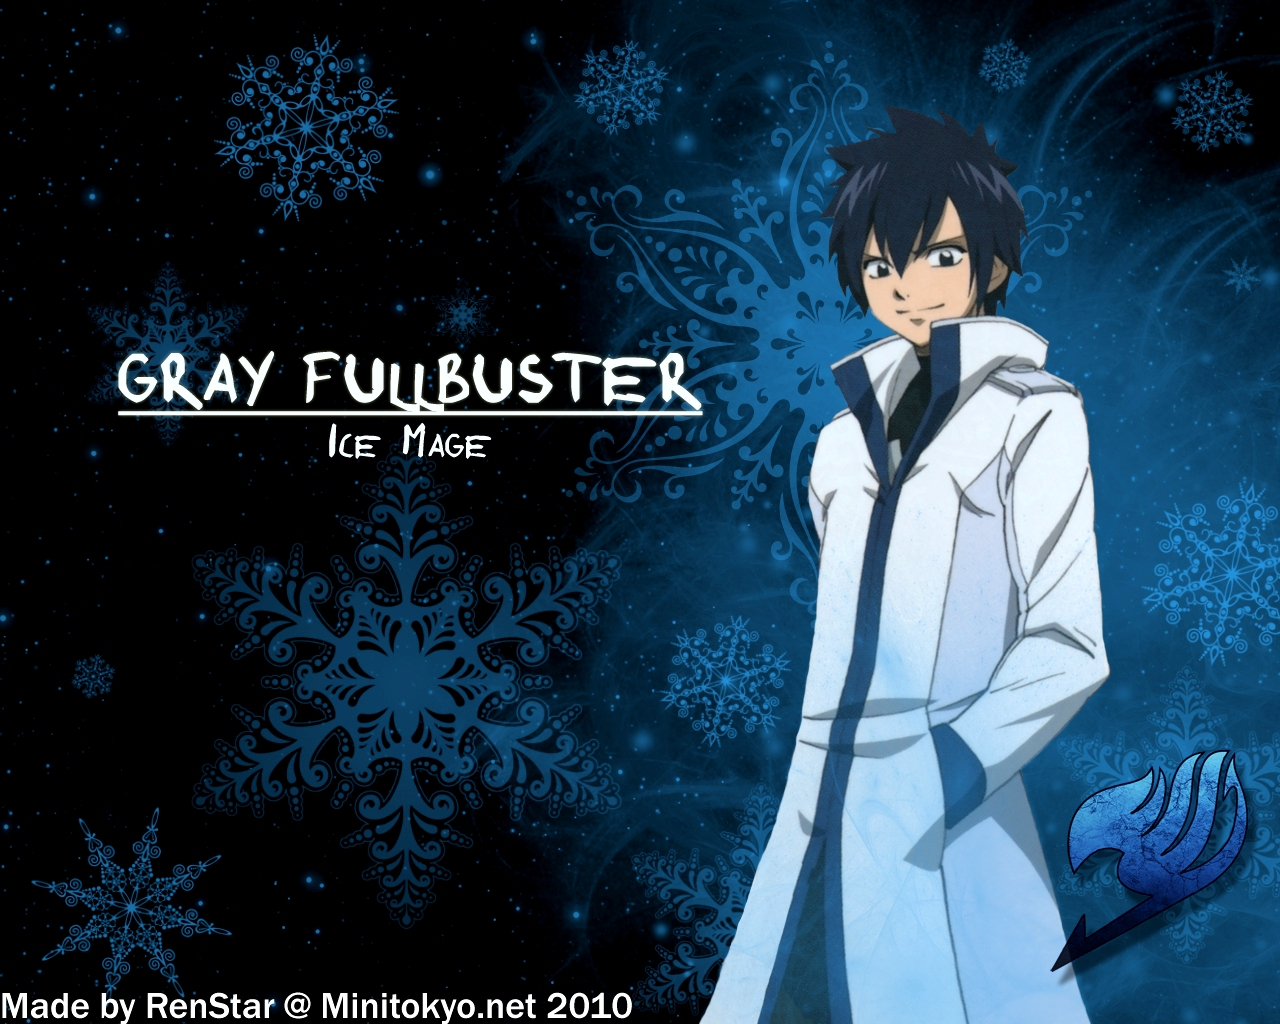 Gray Fullbuster images